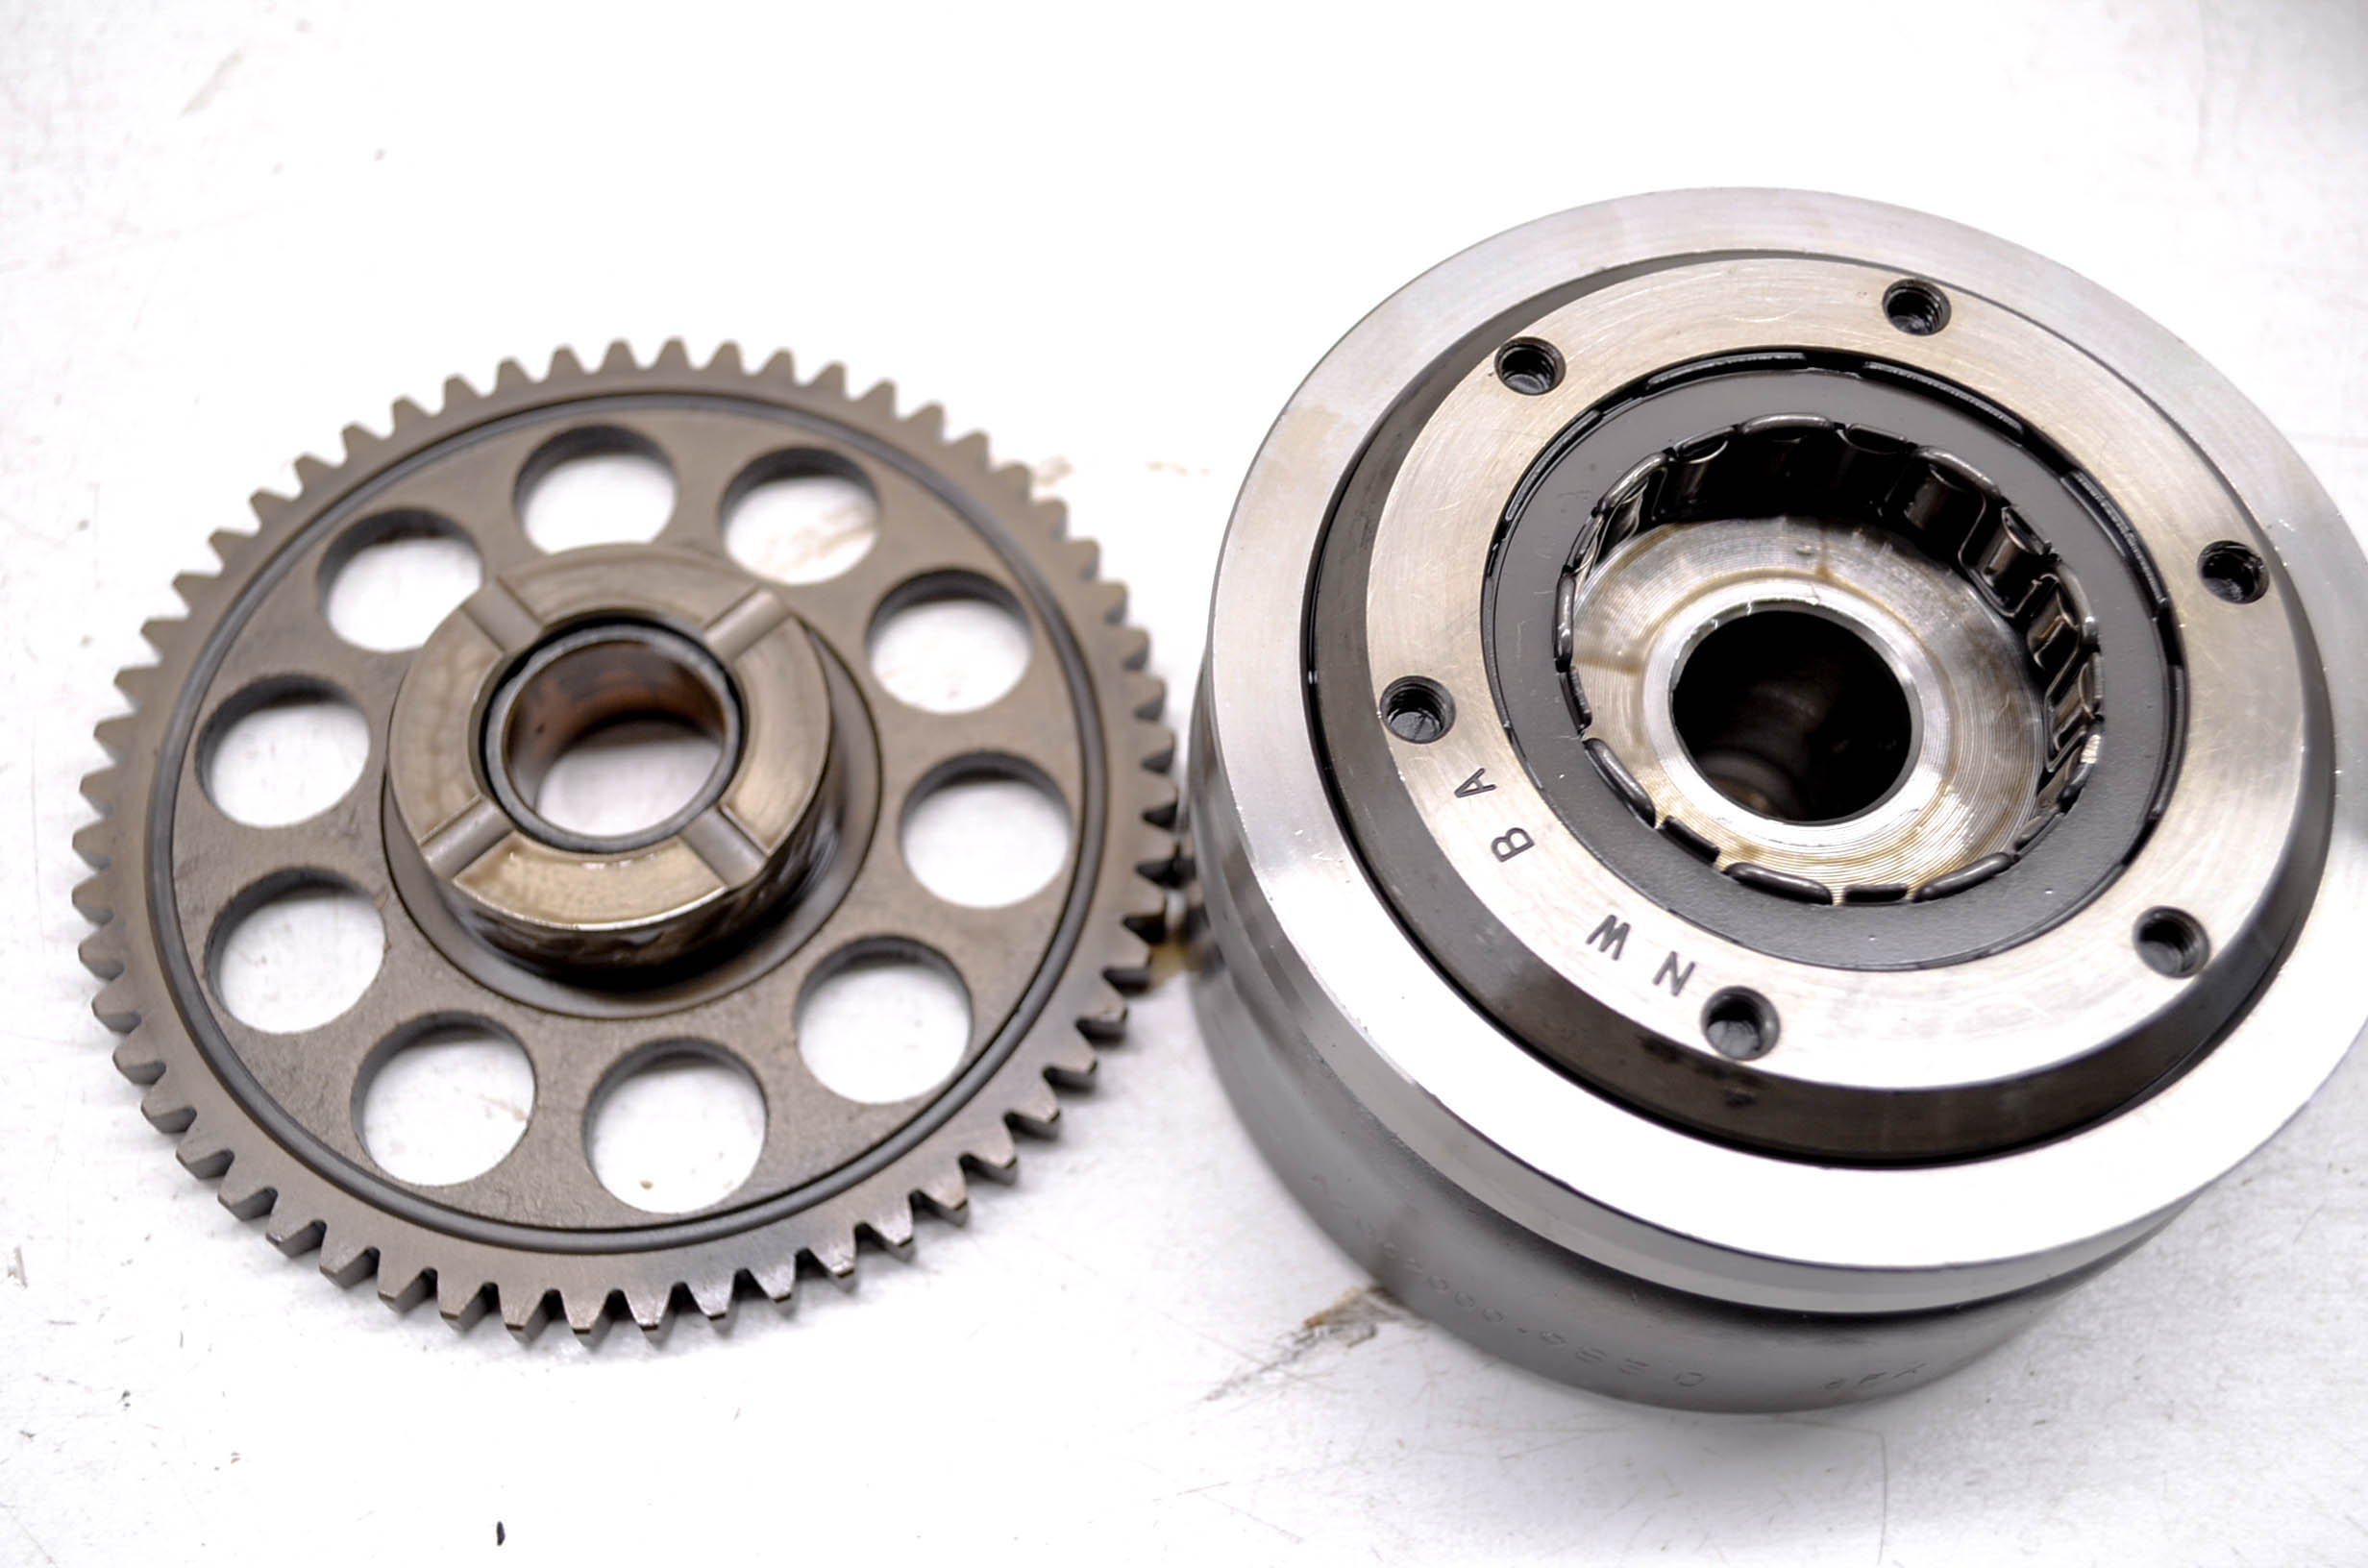 08 Honda CRF230F Flywheel Starter Clutch Bearing & Gear | eBay